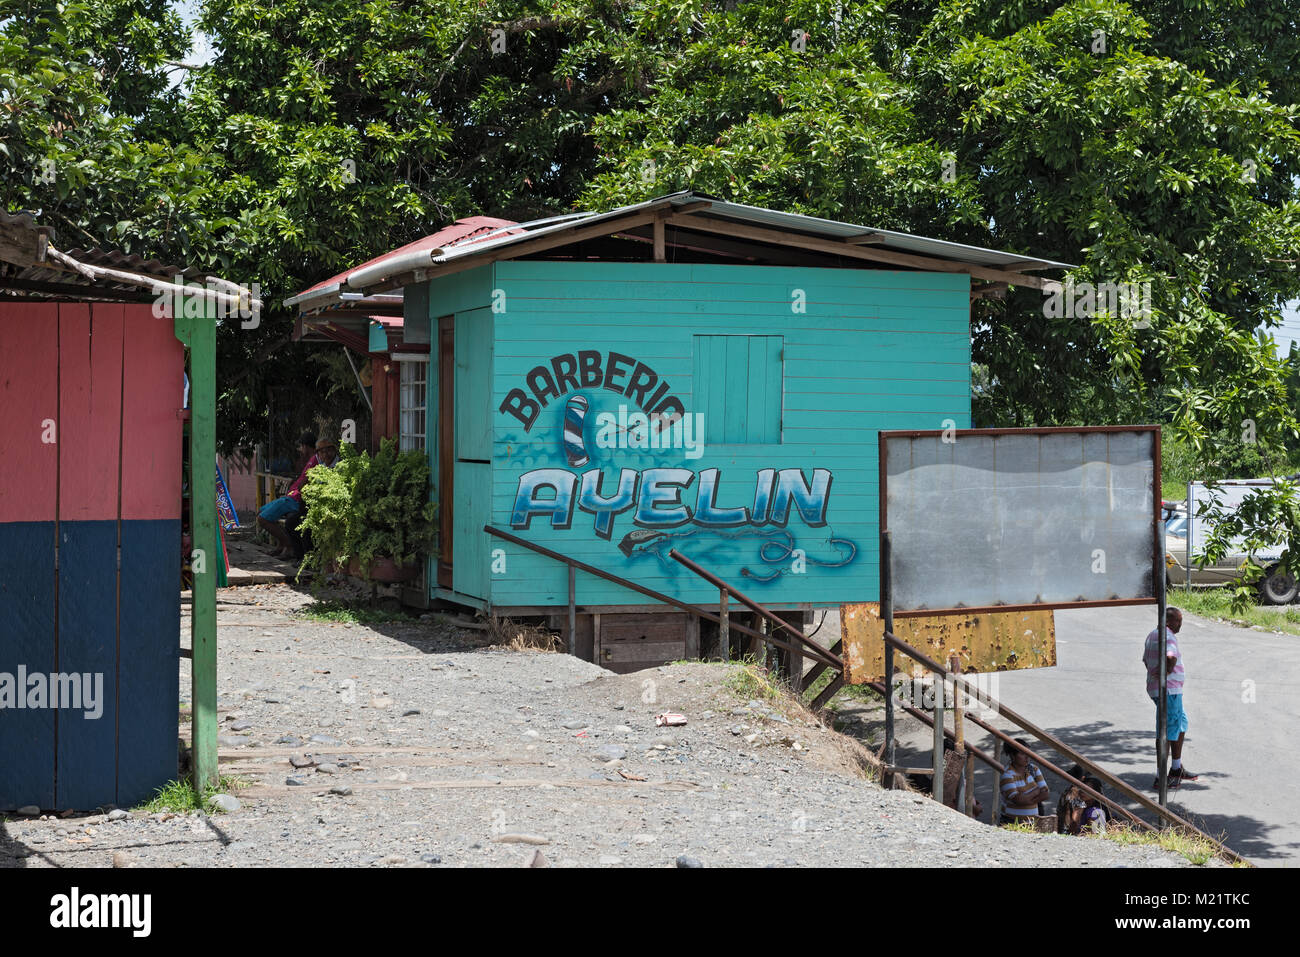 Barber shop in Guabito (Panama) on the border with Costa Rica Stock Photo